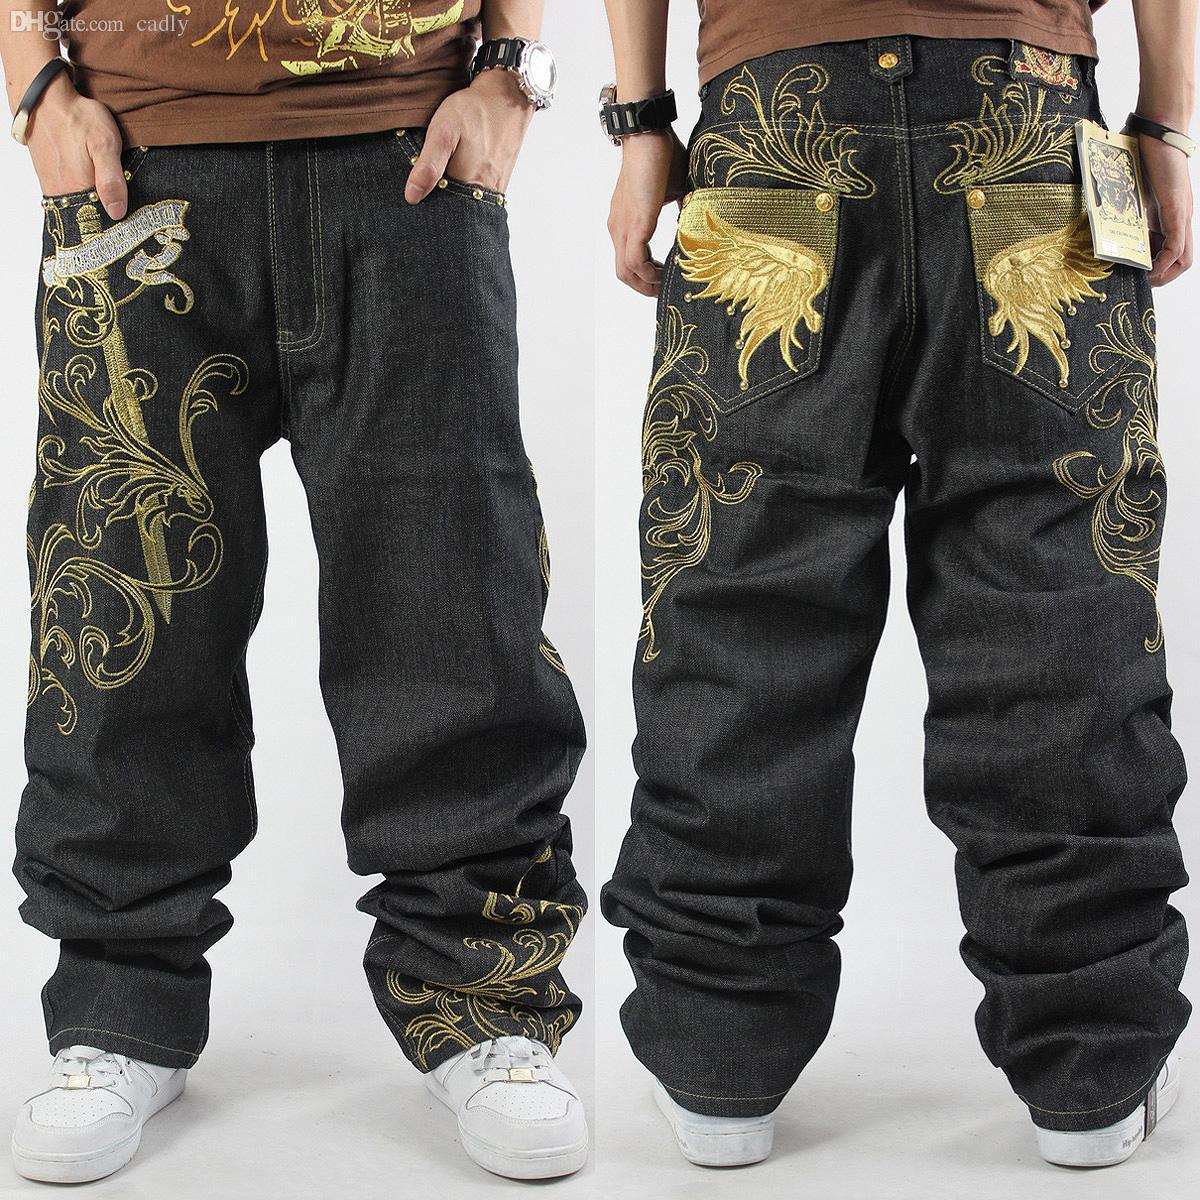 87fa94f513a 2019 Wholesale 2016 New Mens Hip Hop Baggy Jeans For Street Dancing  Amp   Skateboard Loose Fit High Quality Embroidery Plus Size 30 To 46 Hot From  Cadly